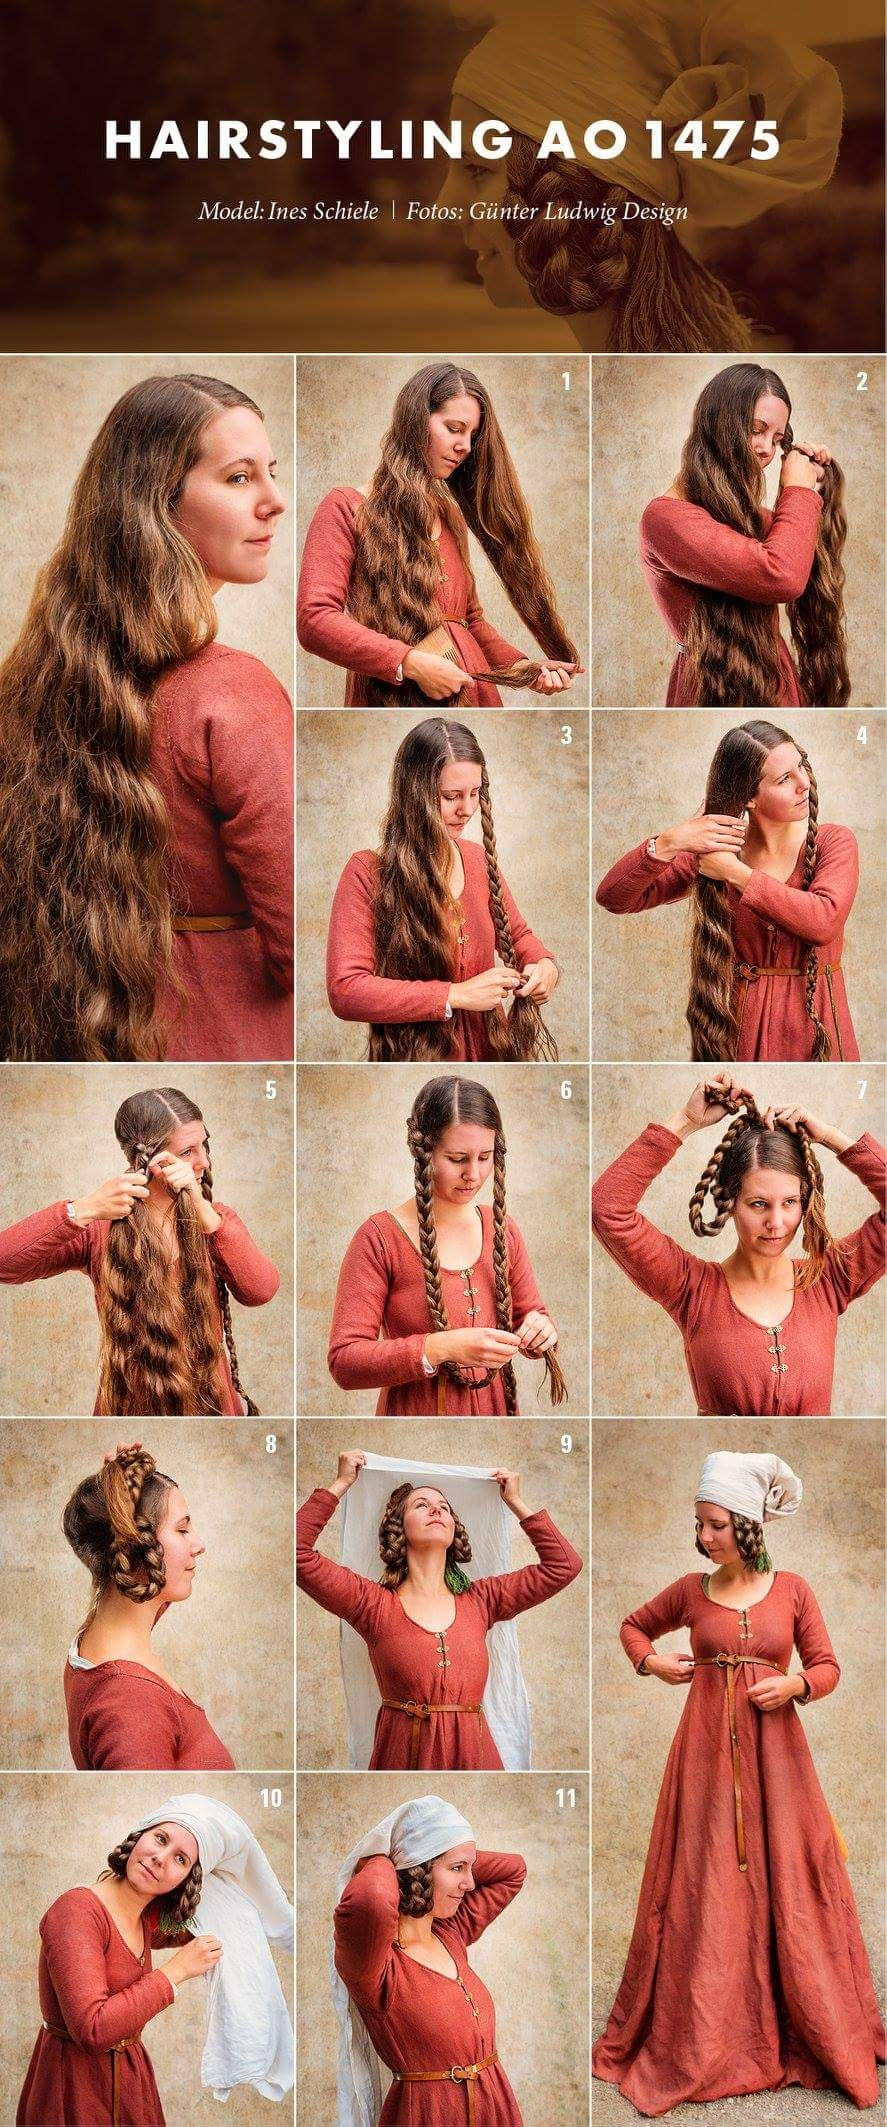 hair style | sca womens garb | historical hairstyles